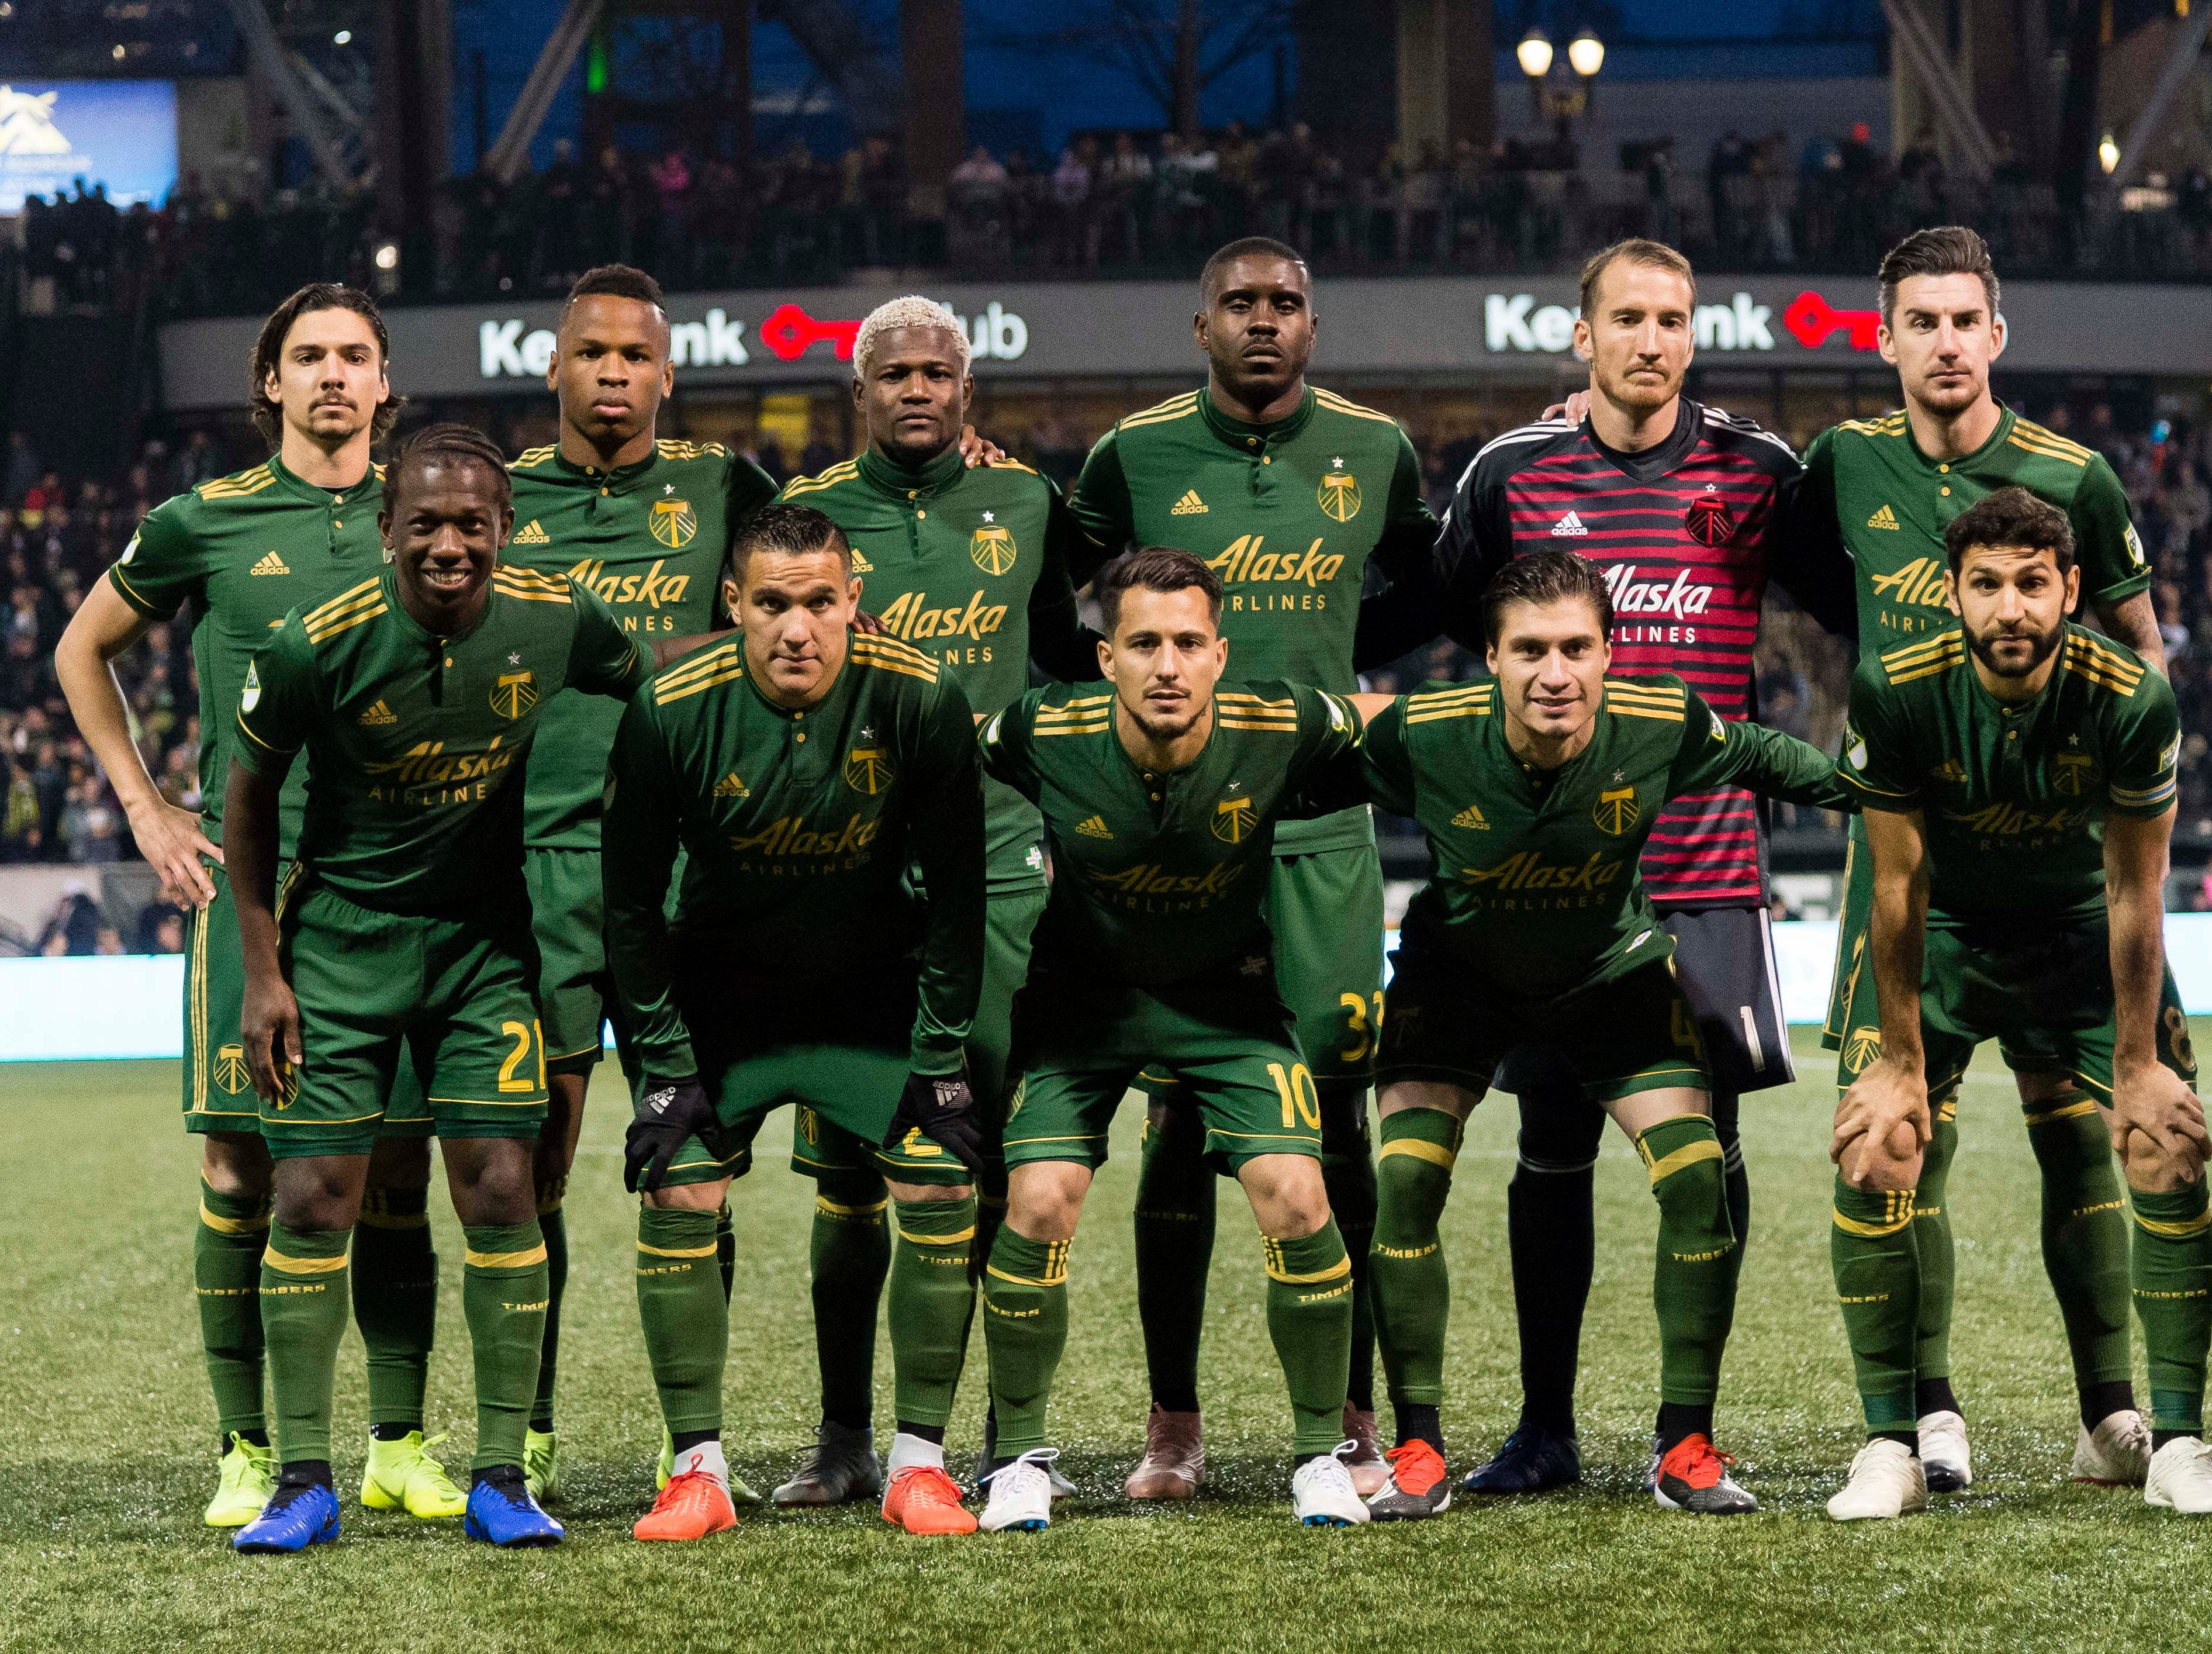 Nov 25, 2018; Portland, OR, USA; The starting lineup for the Portland Timbers before a game against Sporting Kansas City in the first leg of the MLS Western Conference Championship at Providence Park. The game ended tied 0-0.  Mandatory Credit: Troy Wayrynen-USA TODAY Sports